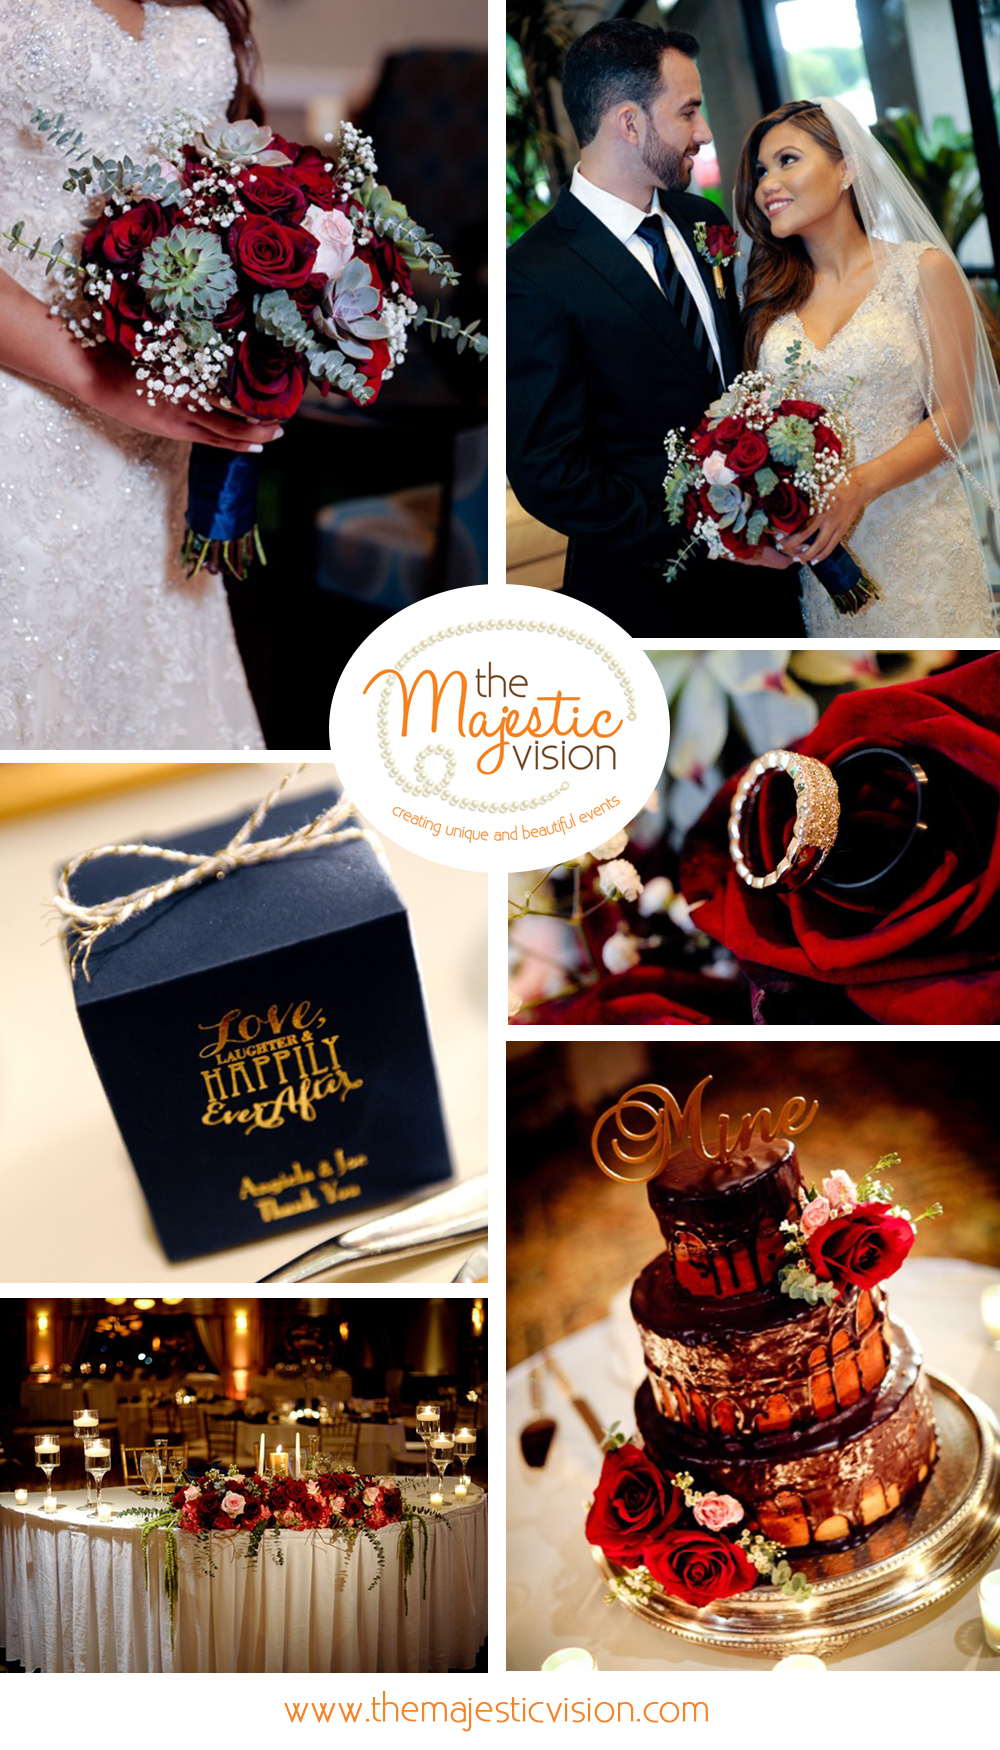 Beautiful Red and Navy Wedding | The Majestic Vision Palm Beach Wedding Planning | Boca Pointe Country Club in Boca Raton, FL | www.themajesticvision.com | GP Photography